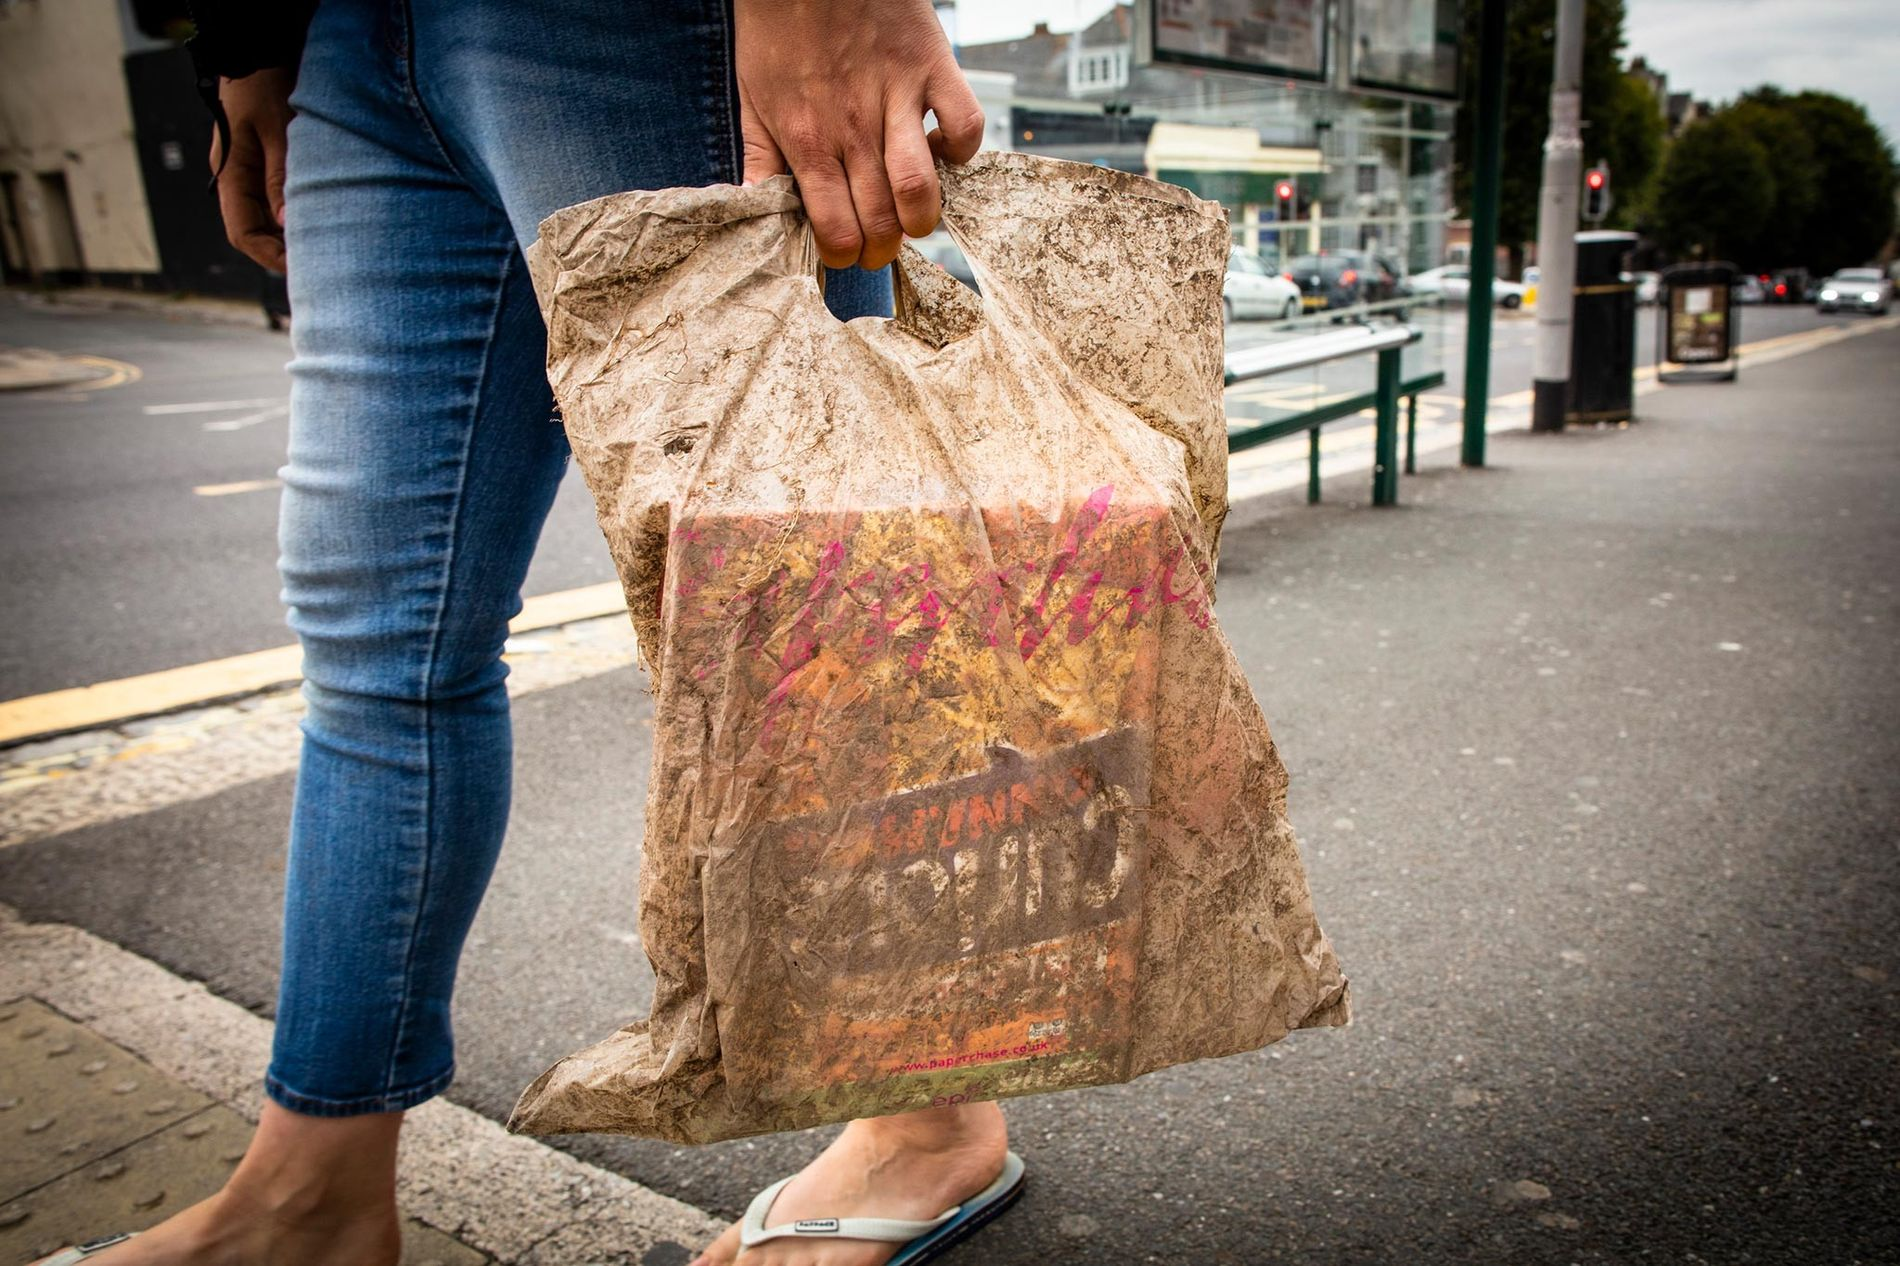 A plastic shopping bag buried in soil for three years could still hold a full load of groceries.